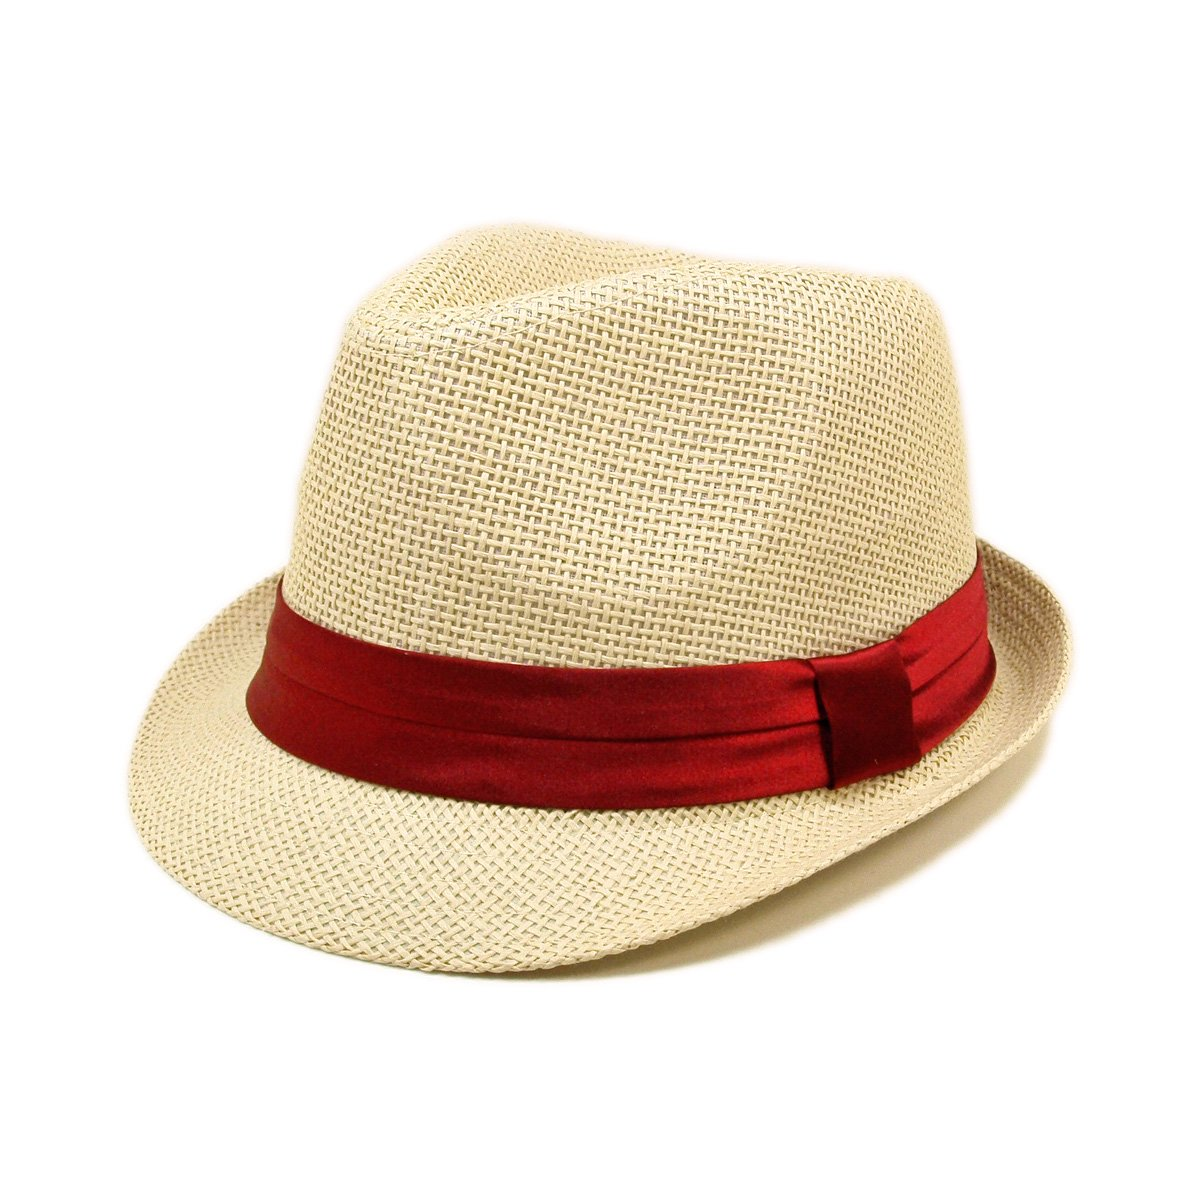 9f7f415dfc183c TrendsBlue Classic Natural Fedora Straw Hat, Burgundy Band at Amazon Women's  Clothing store: